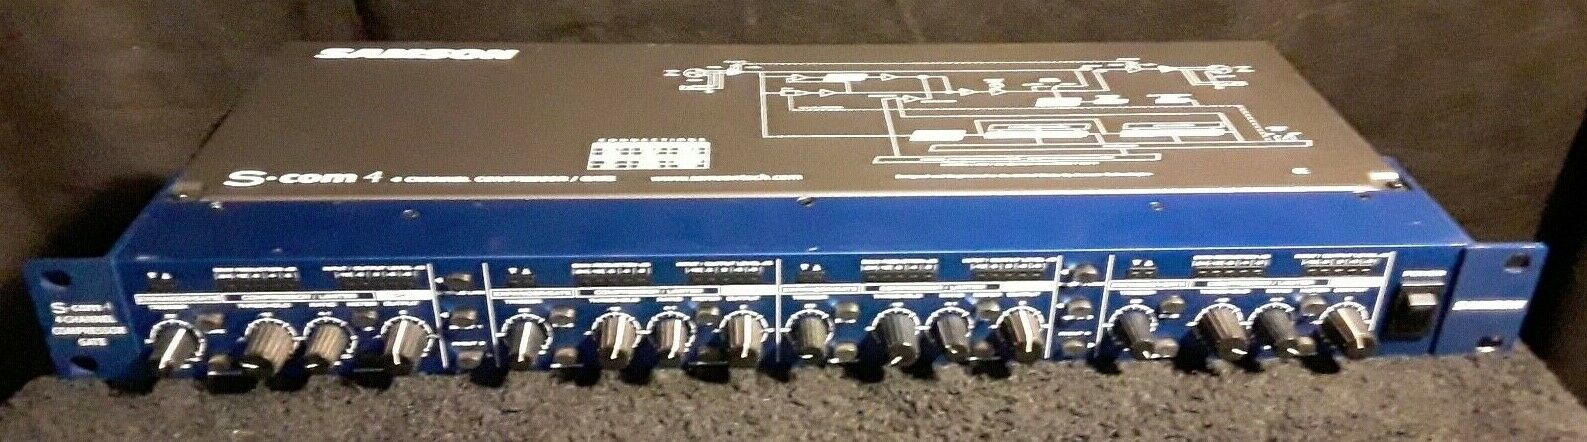 SAMSON 4-CHANNEL COMPRESSOR GATE W POWER CORD